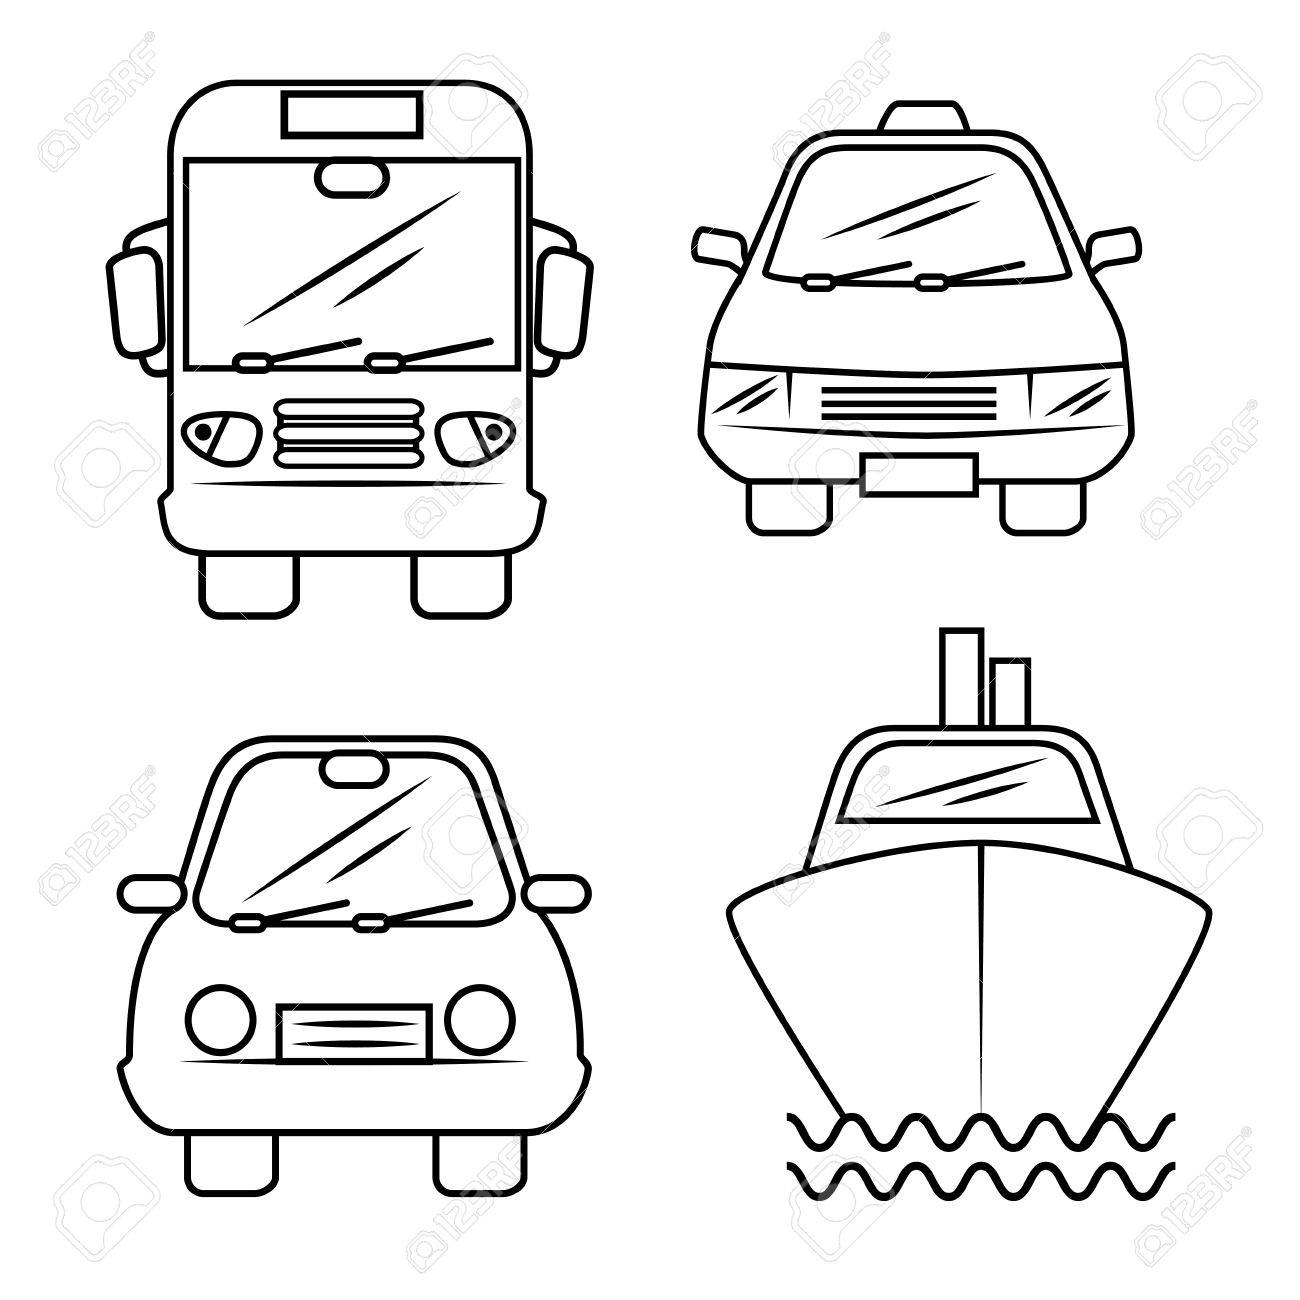 Hand-drawn means of transport over white background. Vector illustration. - 77771988